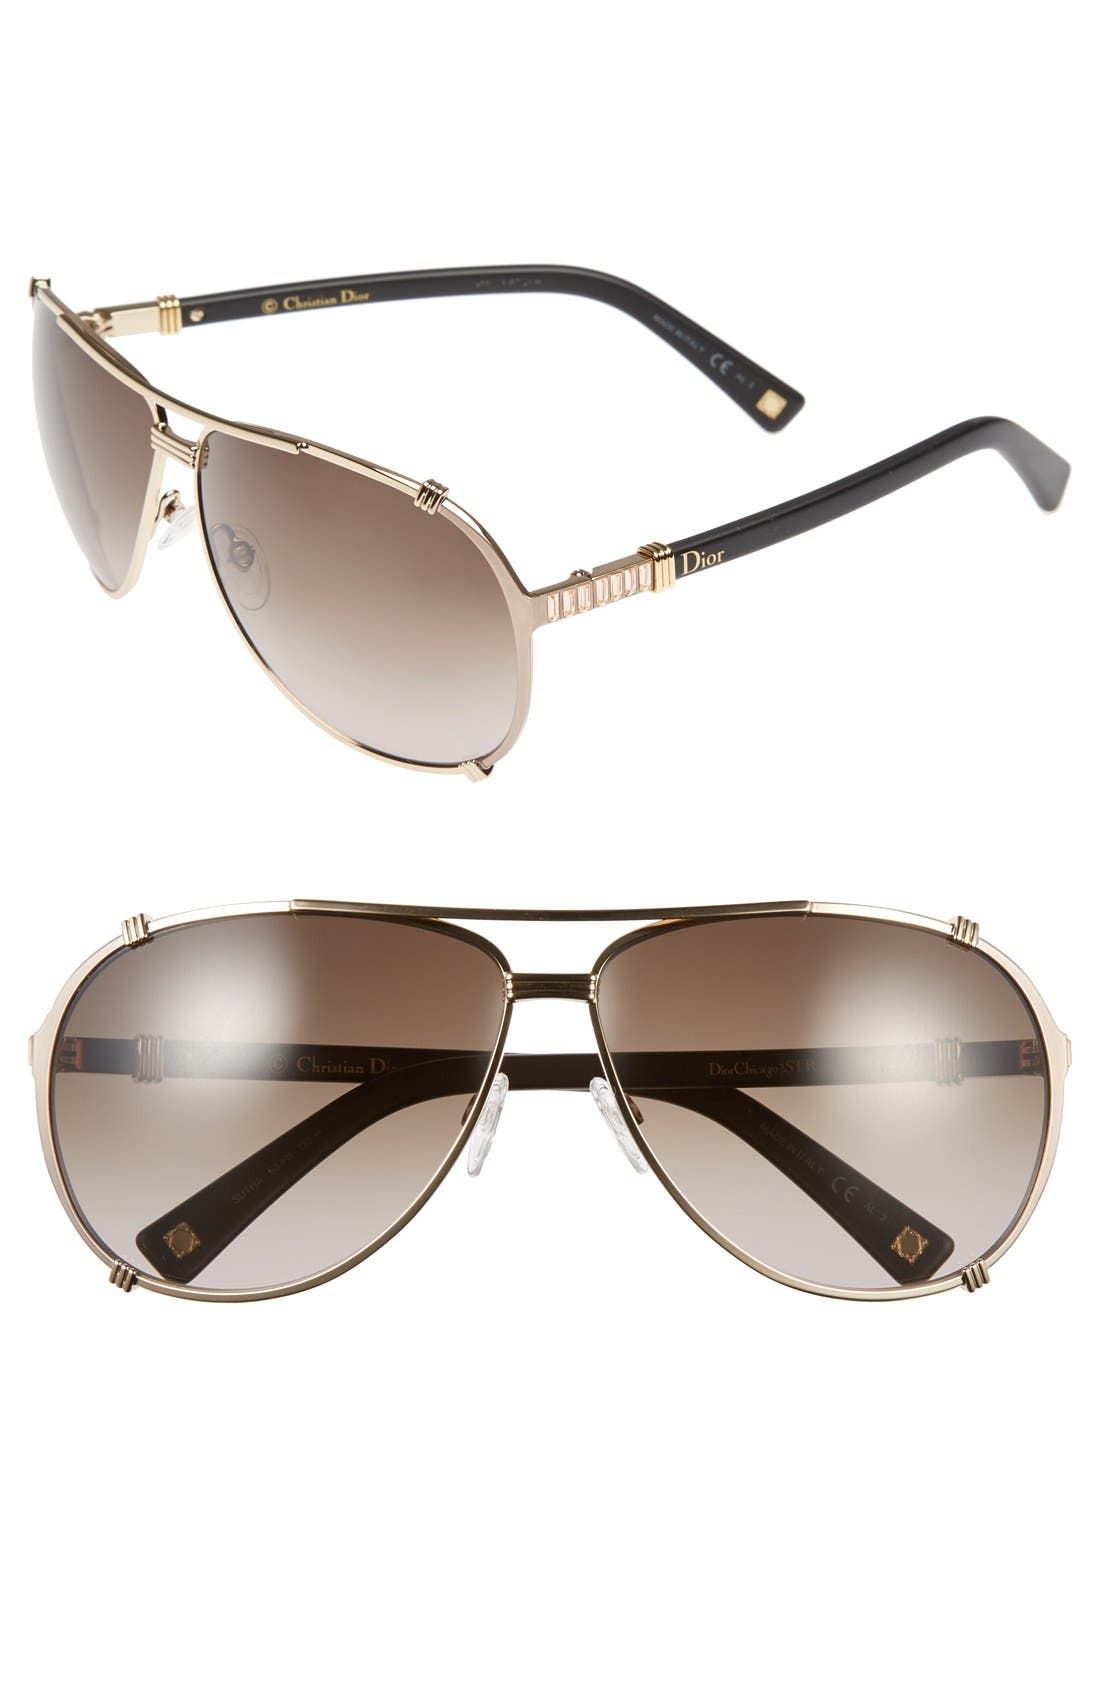 Alternate Image 1 Selected - Dior 'Chicago 2 Strass' 63mm Aviator Sunglasses